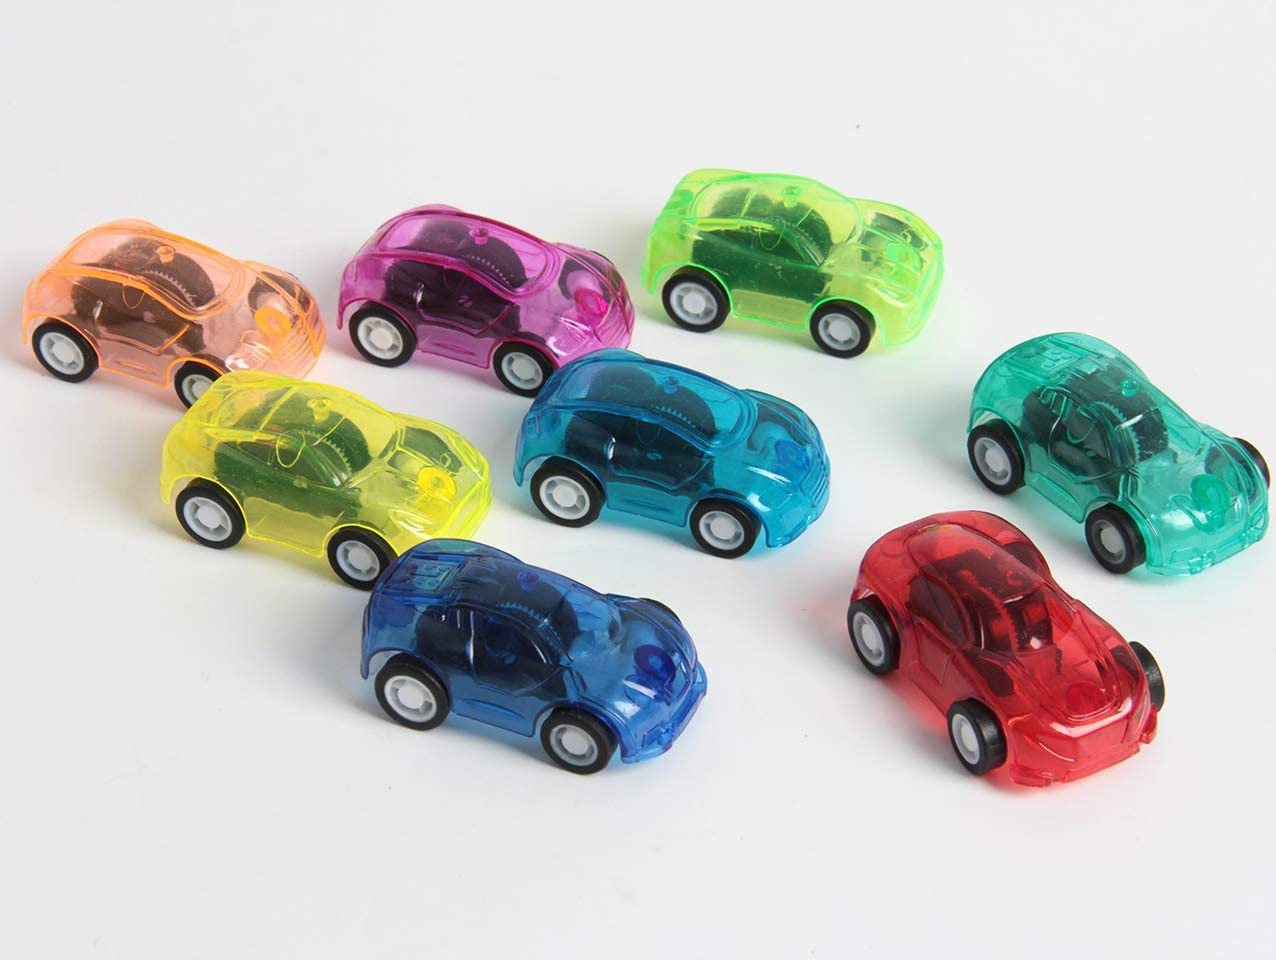 Assorted Colors Racer Vehicle for Party Favor 3 Dozen SBYURE 36 Pack Mini Pull Back and Let Go Fast Racing Car Goodie Bag Fillers,2 Inch Birthday Theme